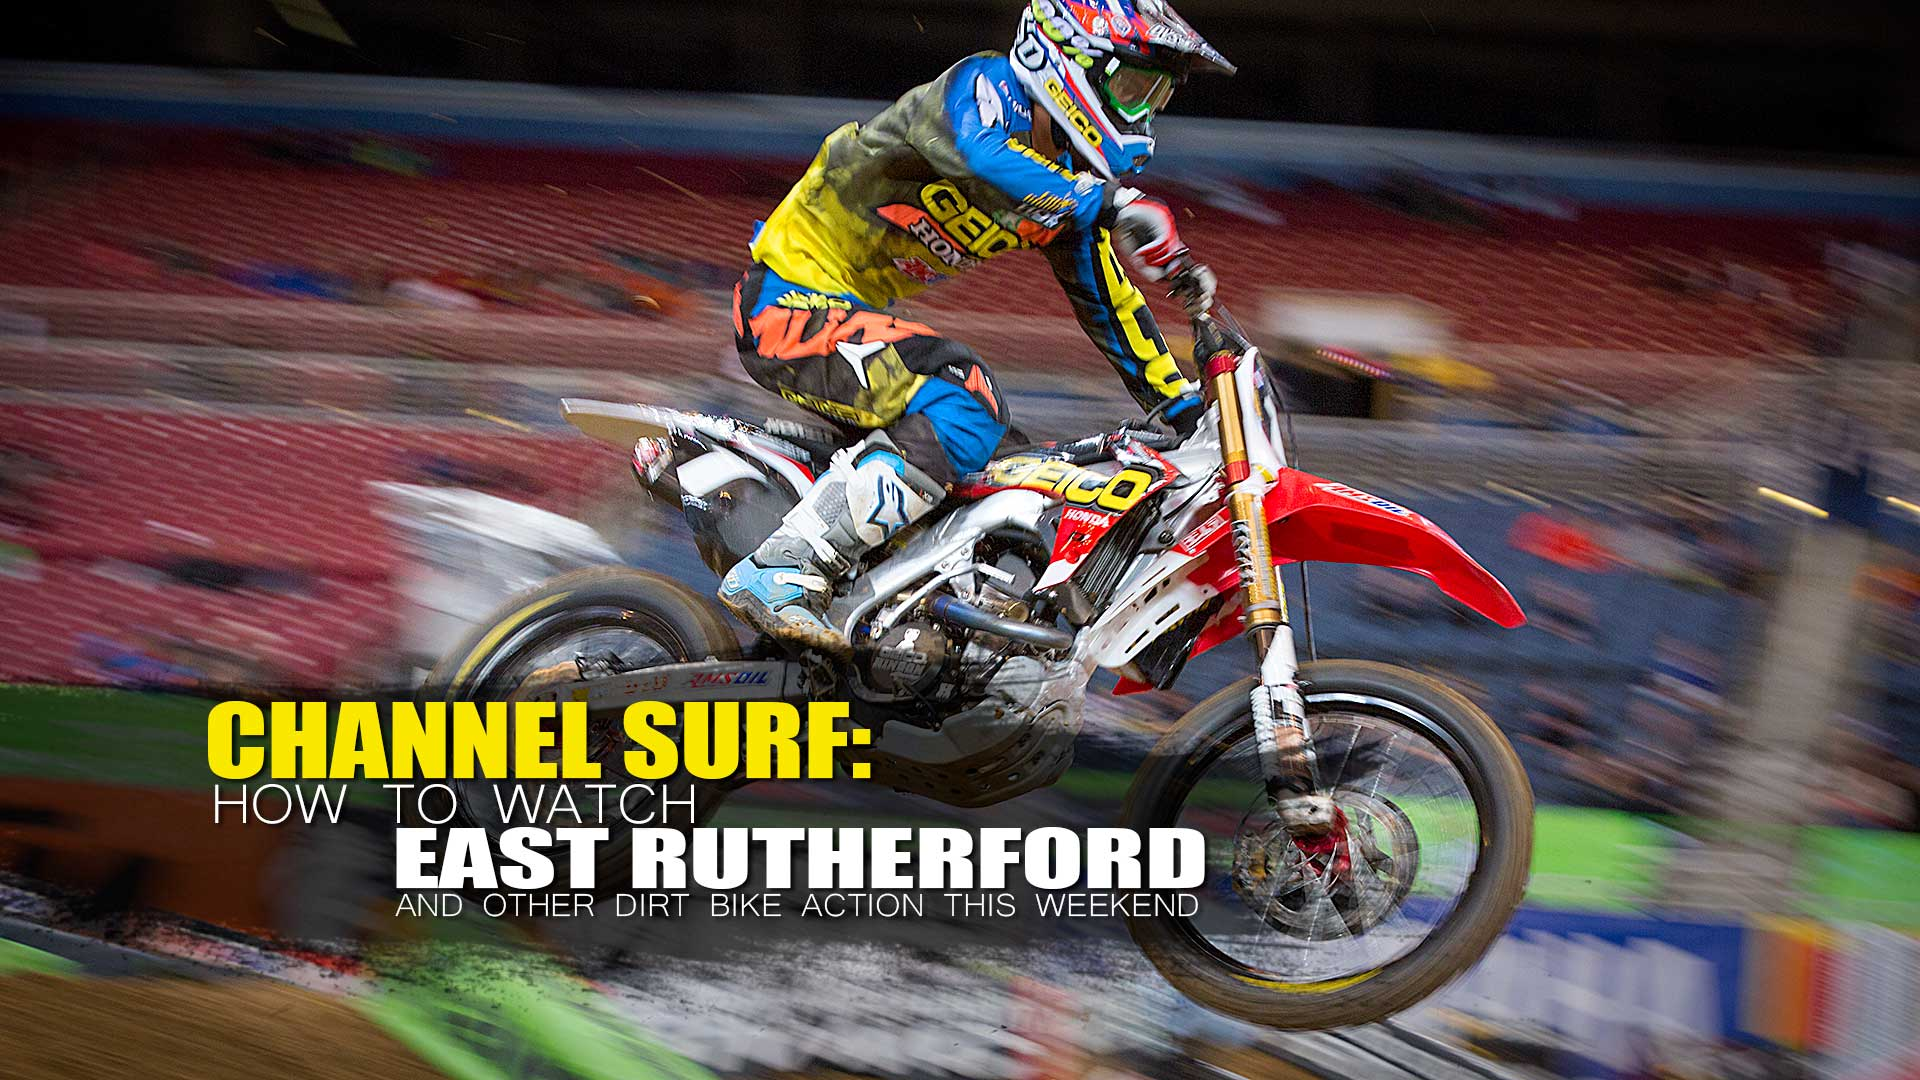 CHANNEL SURF: EAST RUTHERFORD SX | How to Watch and Notes